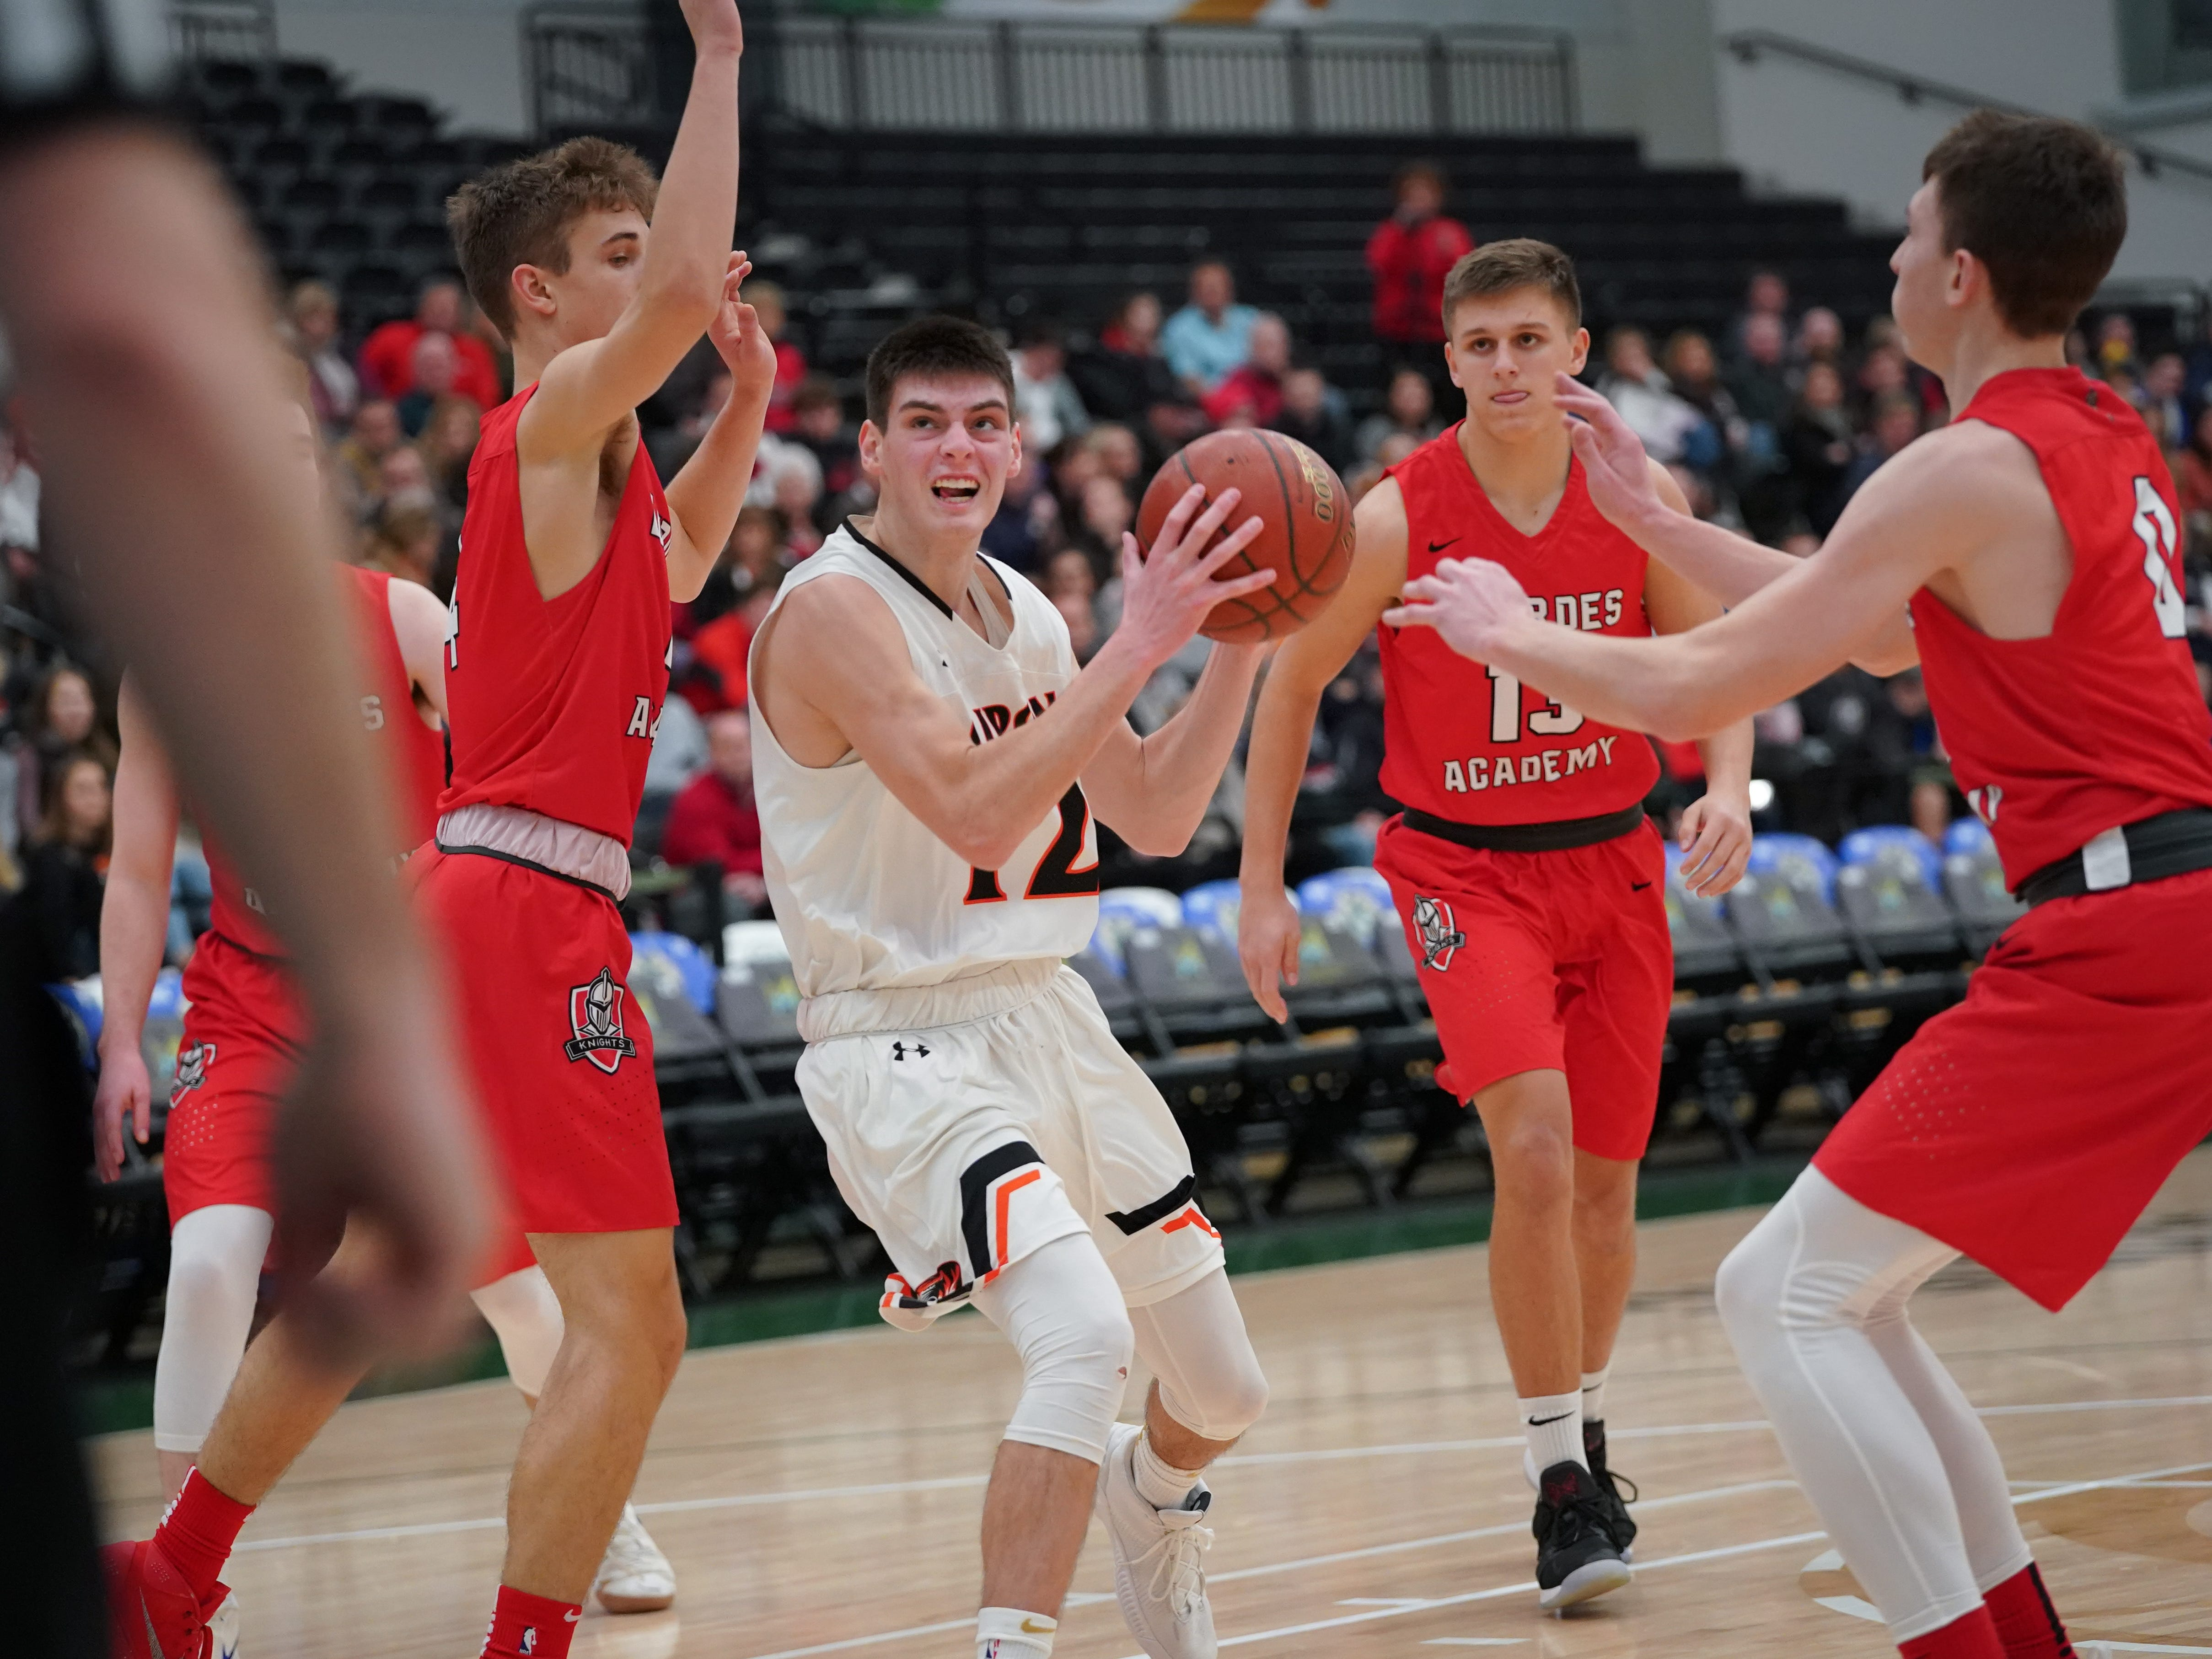 Luke Rogers (12) of Ripon drives in to the basket. The Lourdes Knights and Ripon Tigers met in a nonconference basketball game Saturday afternoon, December 29, 2018 at the Menomonie Nation Arena in Oshkosh.